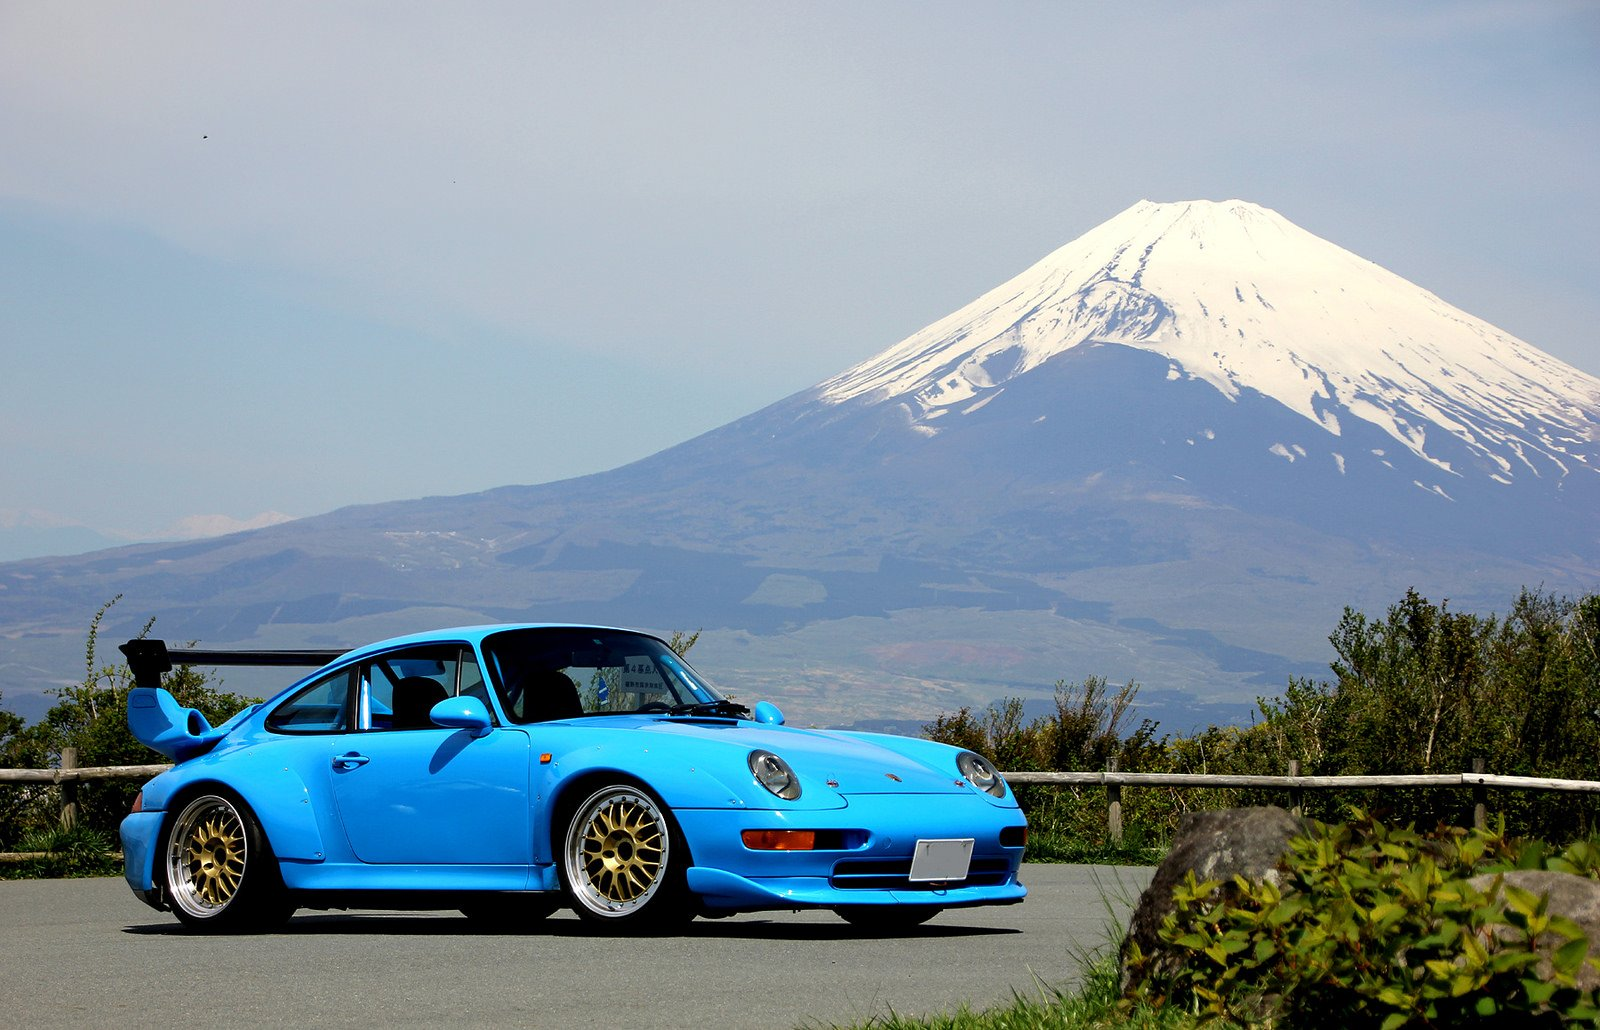 Porsche 993 Gt2 Rs Evo Cars Coupe Sportcars Germany